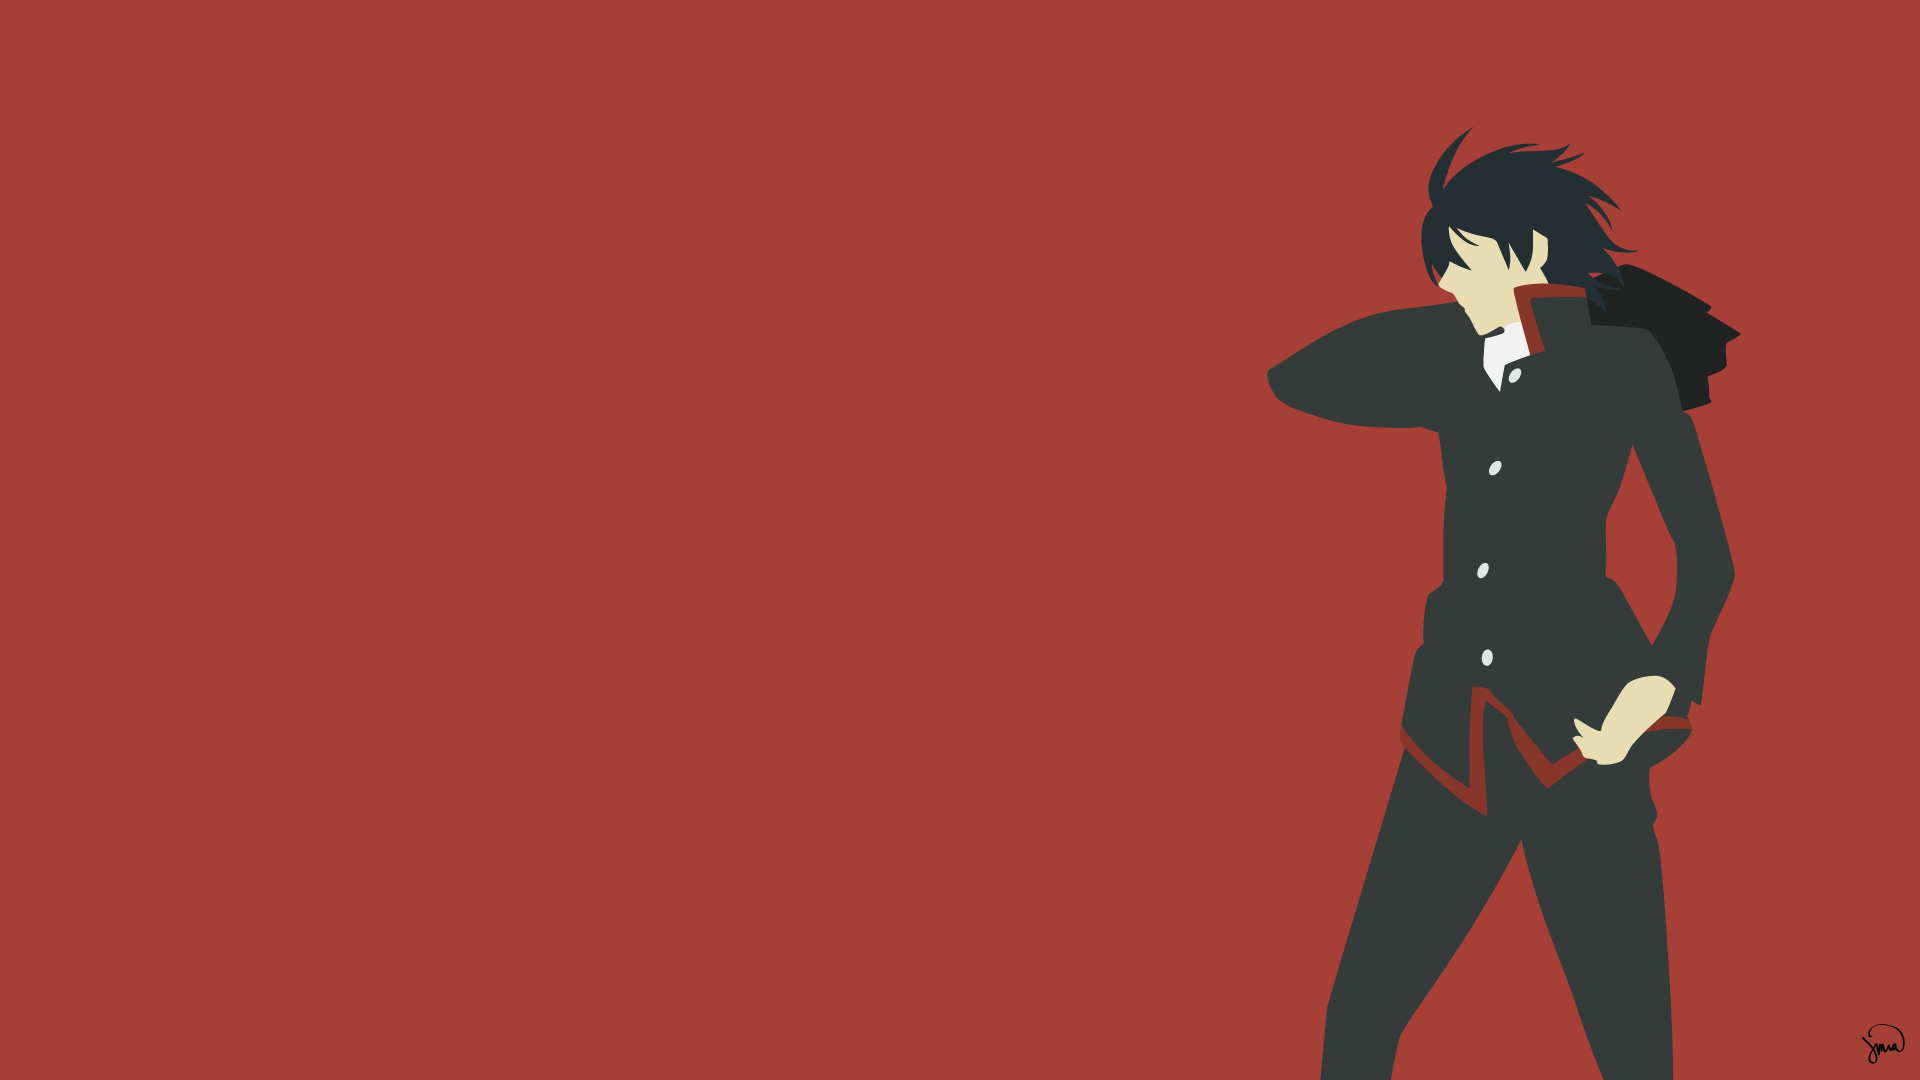 Minimalistic Anime Wallpapers Wallpaper Cave